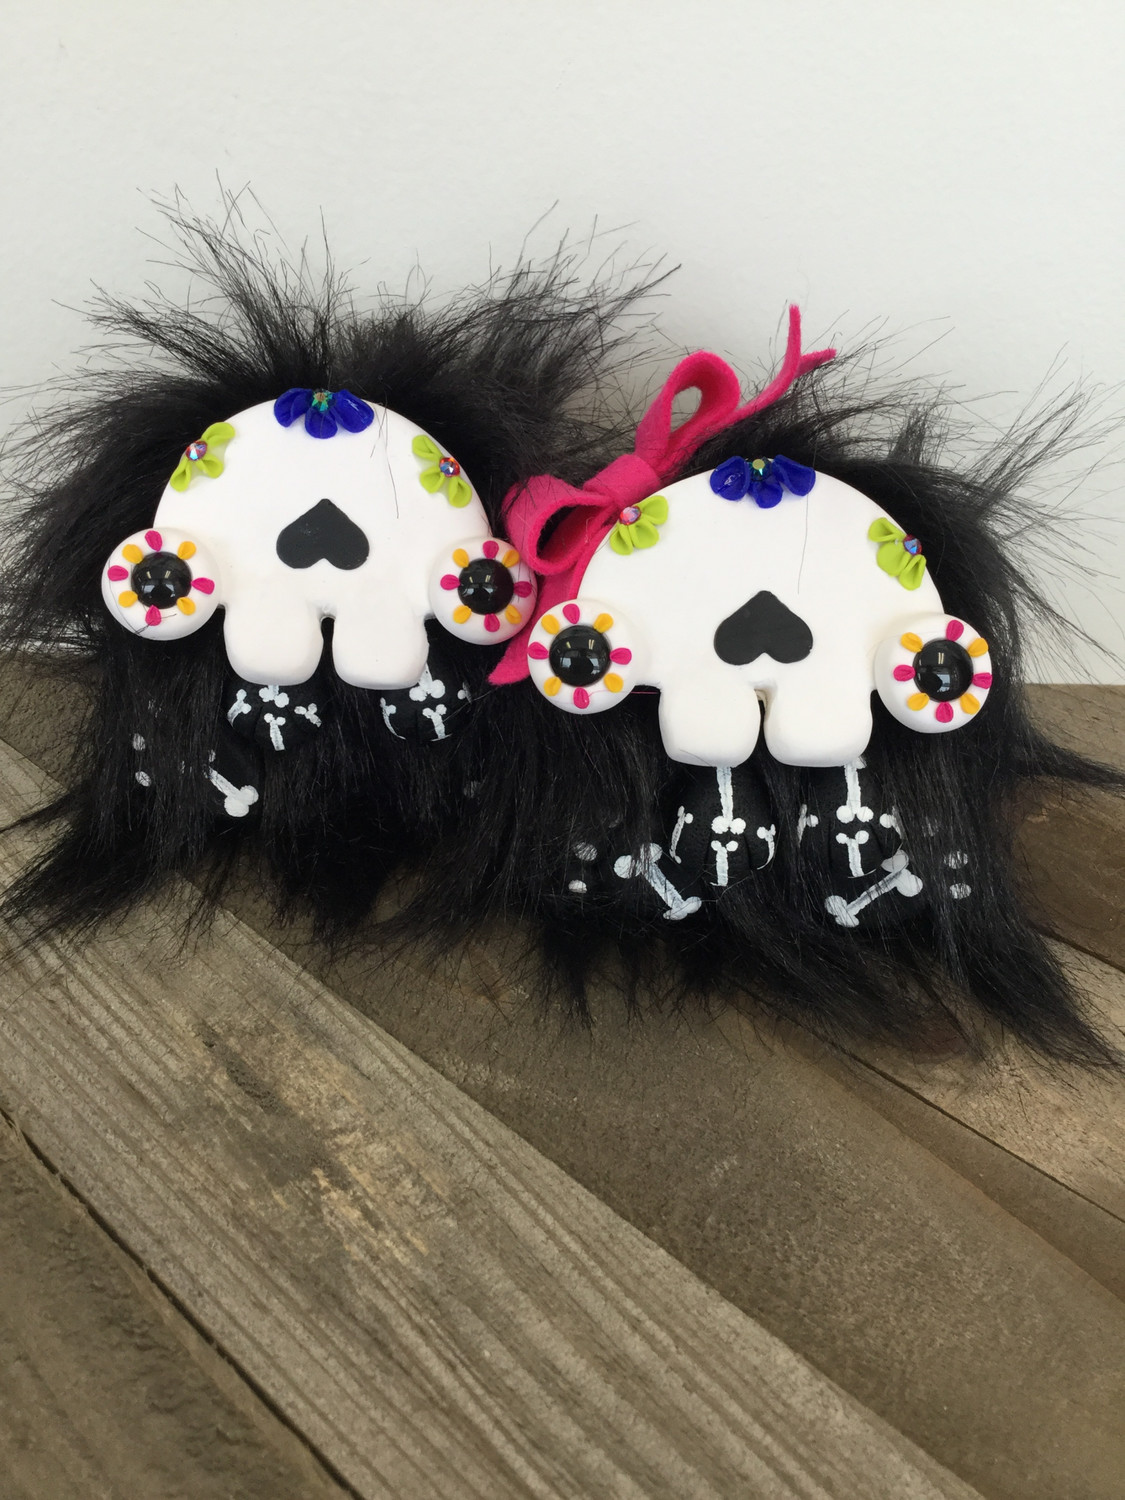 Carlos and Juanita the Sugar Skull Monsters